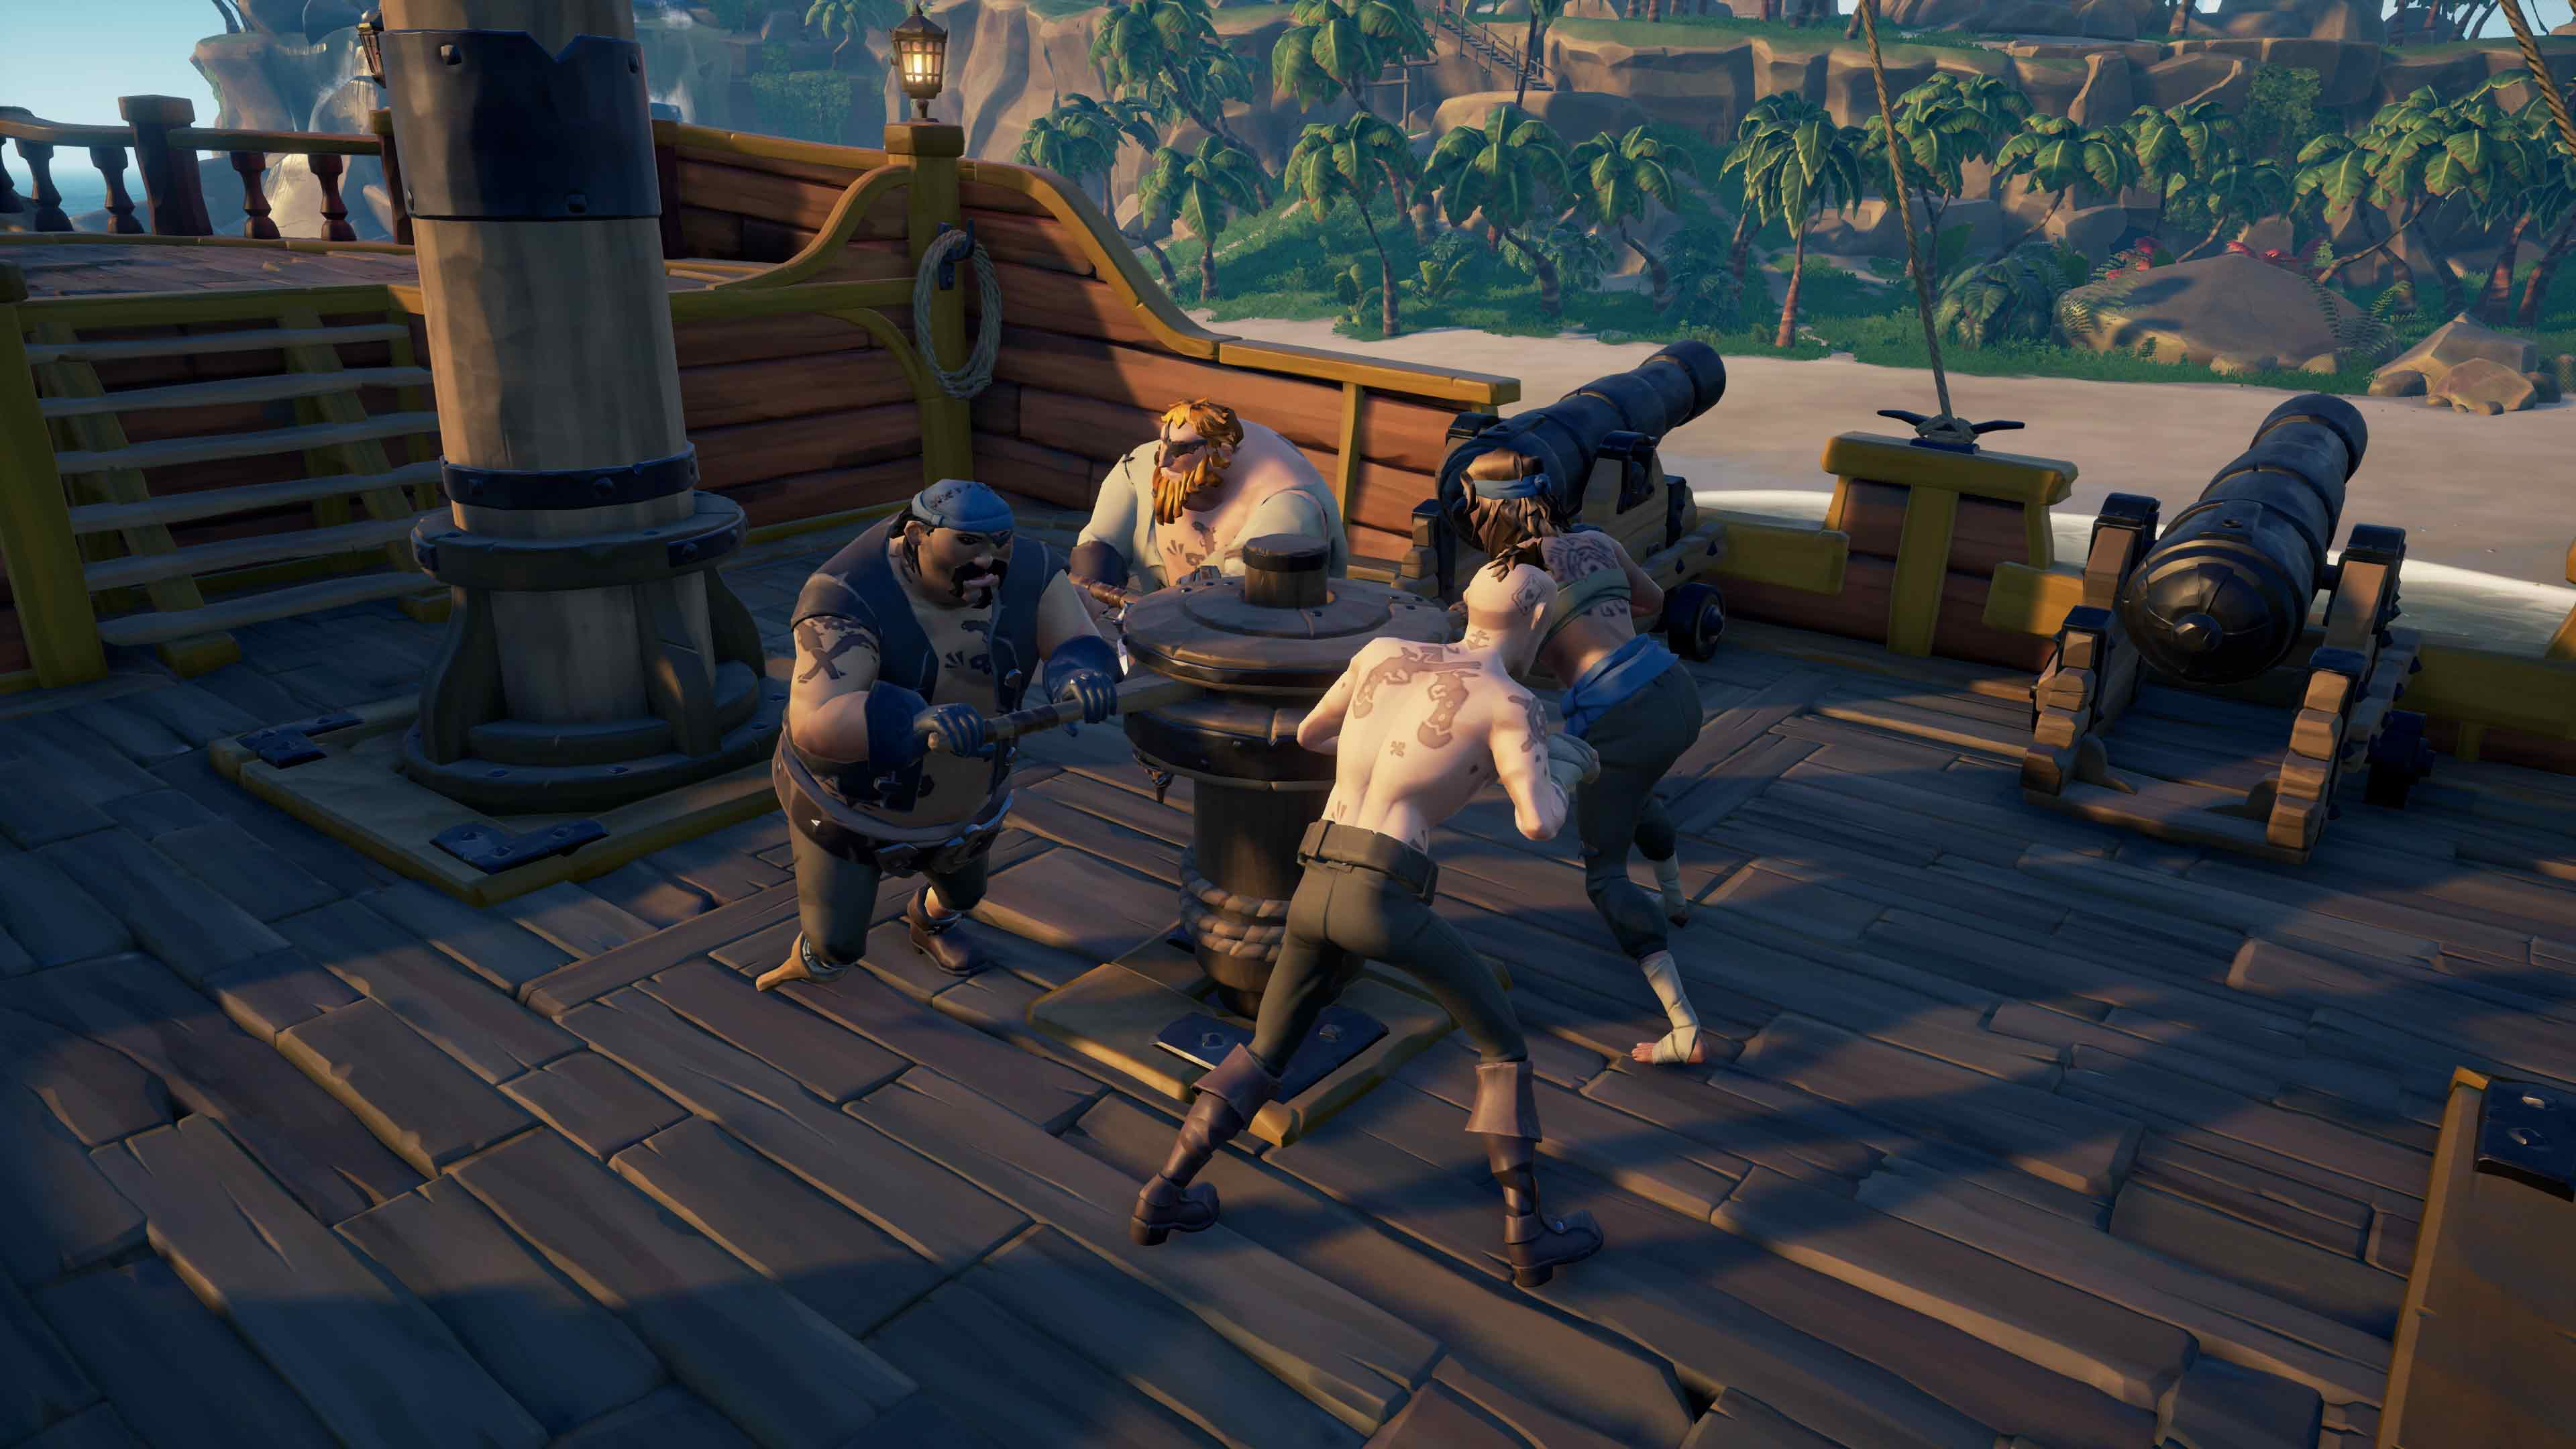 Impresiones de Sea of Thieves para Xbox One y Windows 10